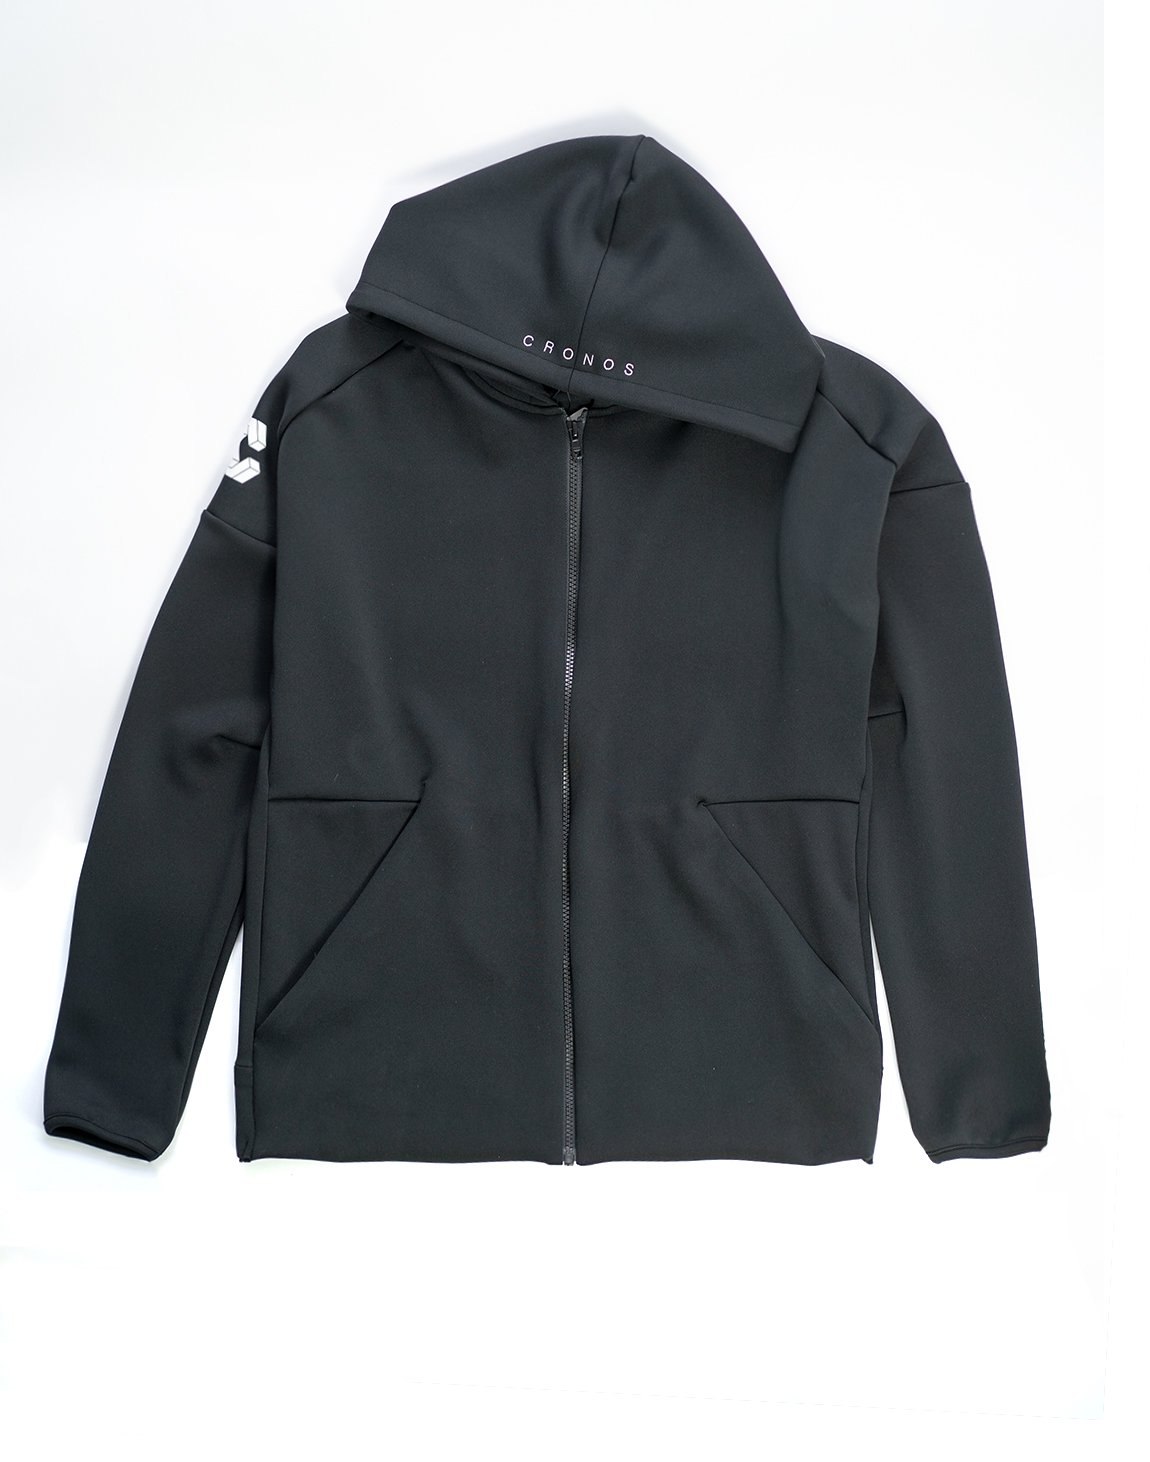 <img class='new_mark_img1' src='https://img.shop-pro.jp/img/new/icons1.gif' style='border:none;display:inline;margin:0px;padding:0px;width:auto;' /> ZIP UP STRETCH PARKA BLACK